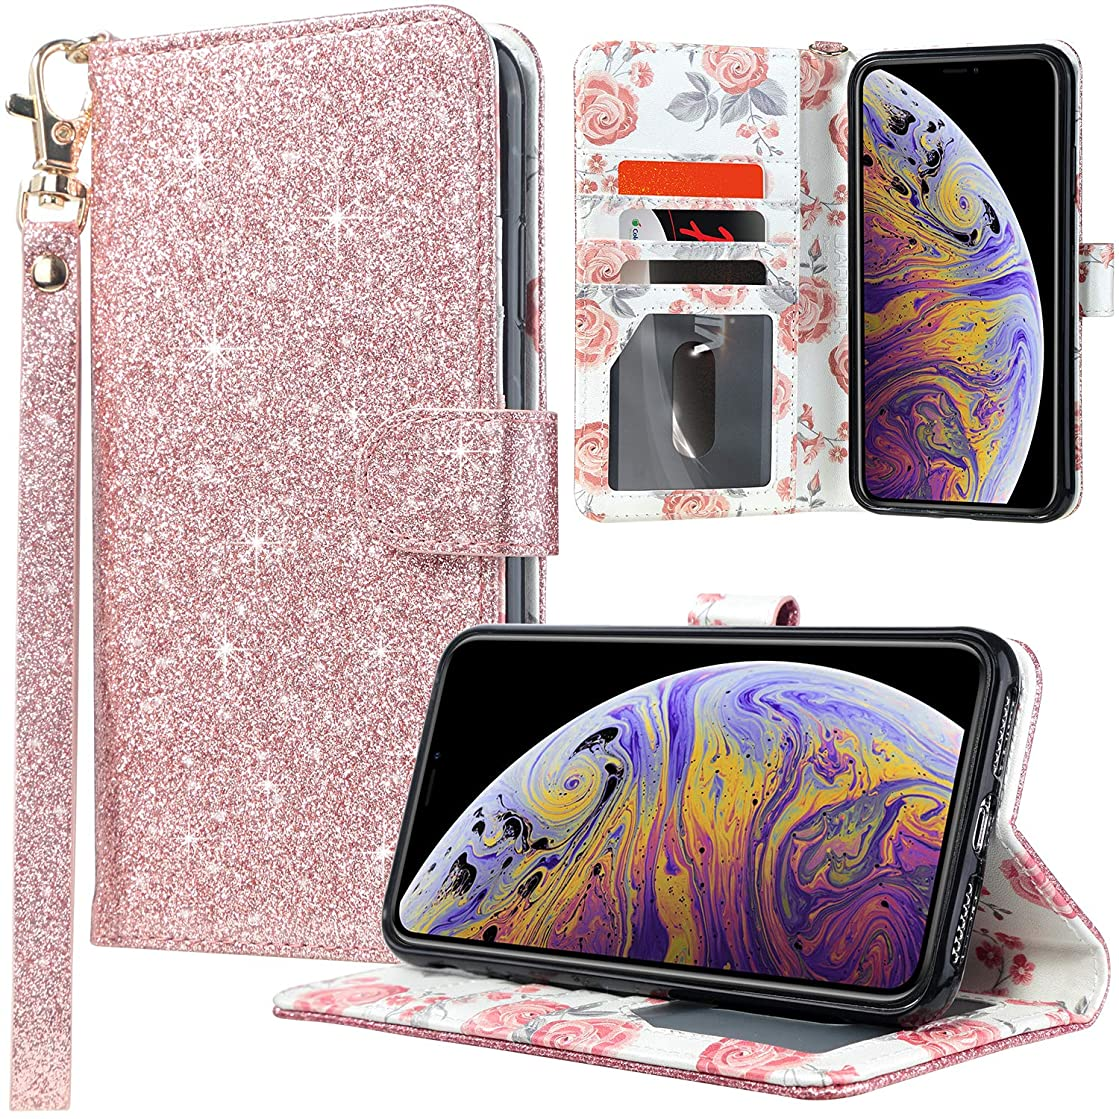 UARMOR Wallet Case for iPhone Xs Max, Glitter Bling Sparkle Flip Folio Case with Credit Card Holder Wrist Strap Kickstand and Closure Function Full Body Protective Shiny PU Leather Cover, Rose Gold